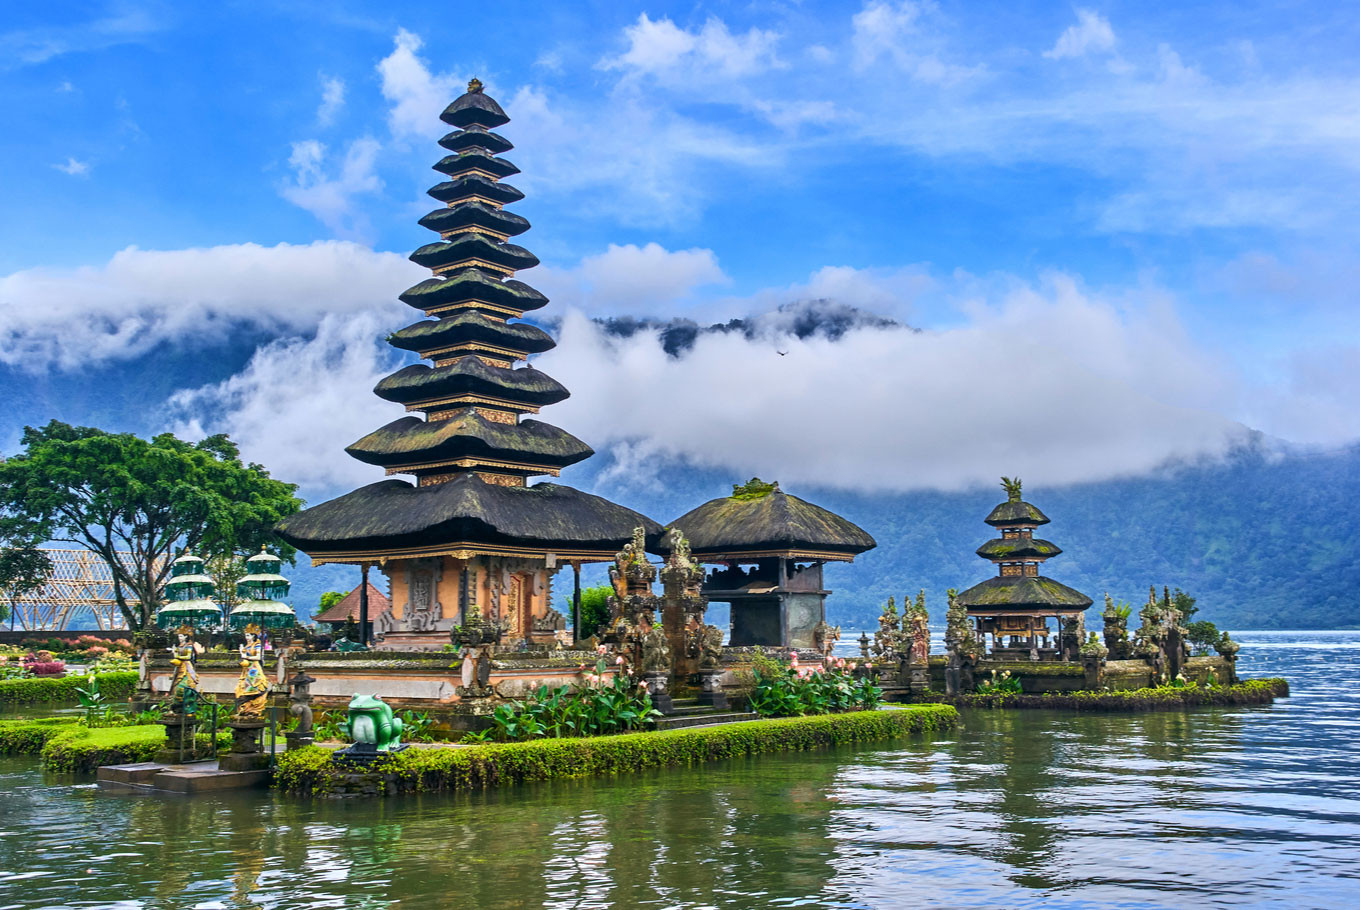 'We should do something or the island will be empty': Criminal Code threatens Bali tourism ...